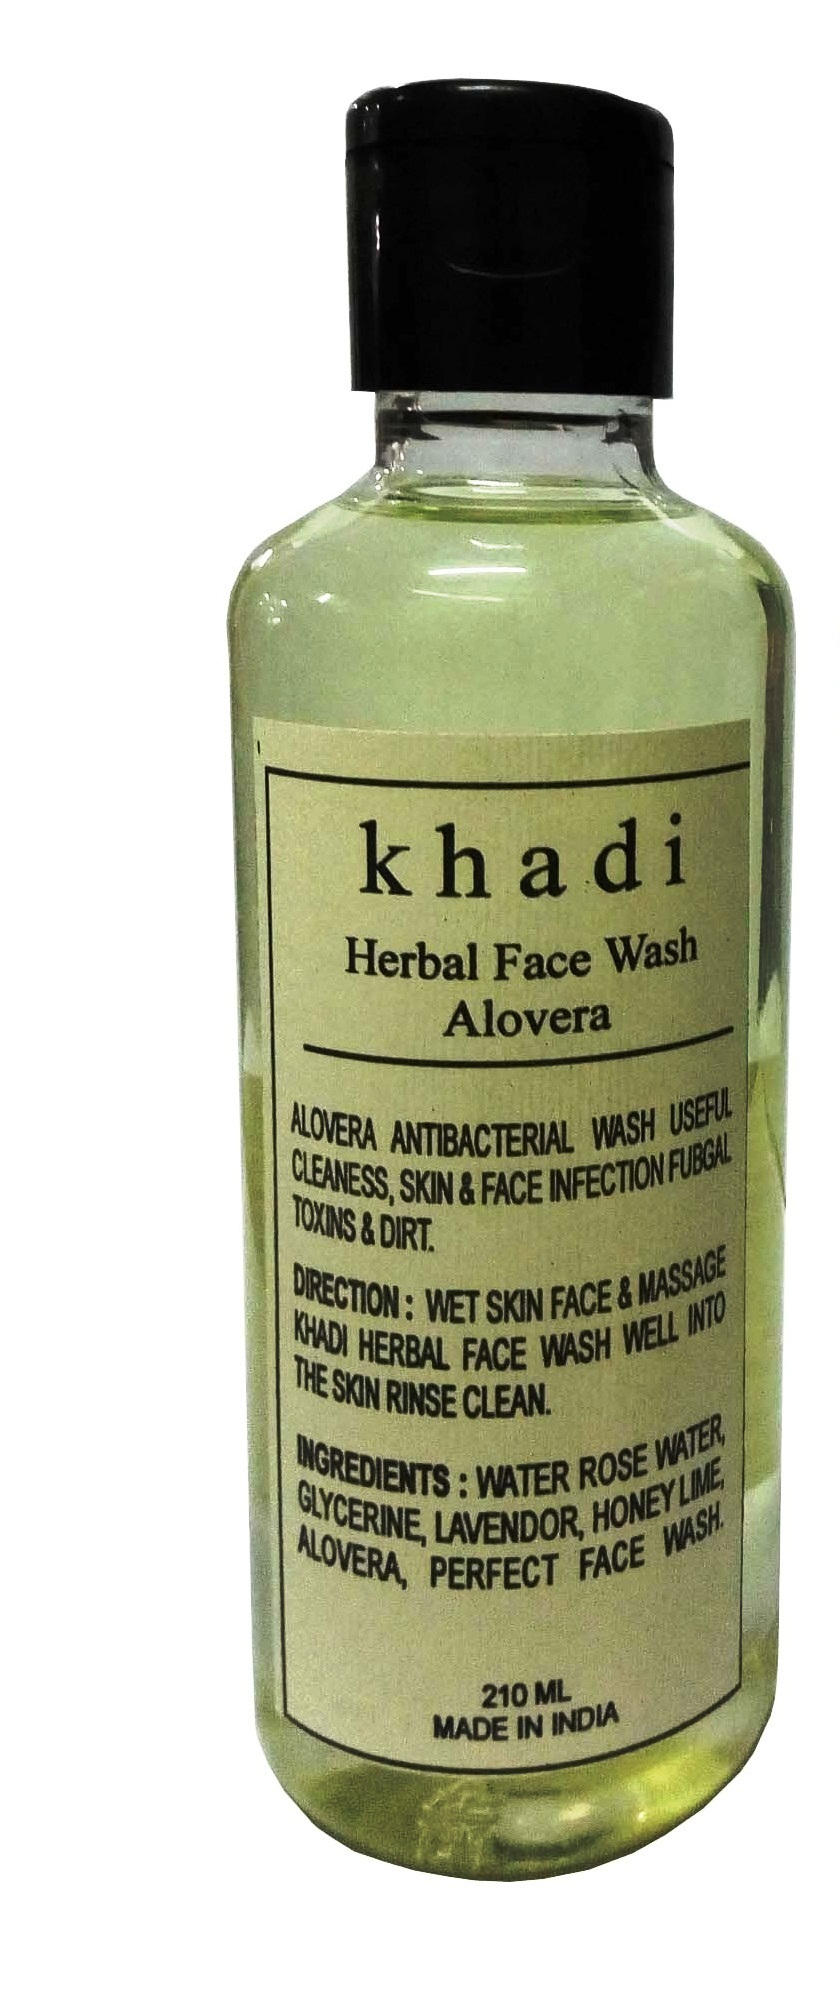 Khadi Herbal Aloevera Face Wash, 210ml - Pack of 1